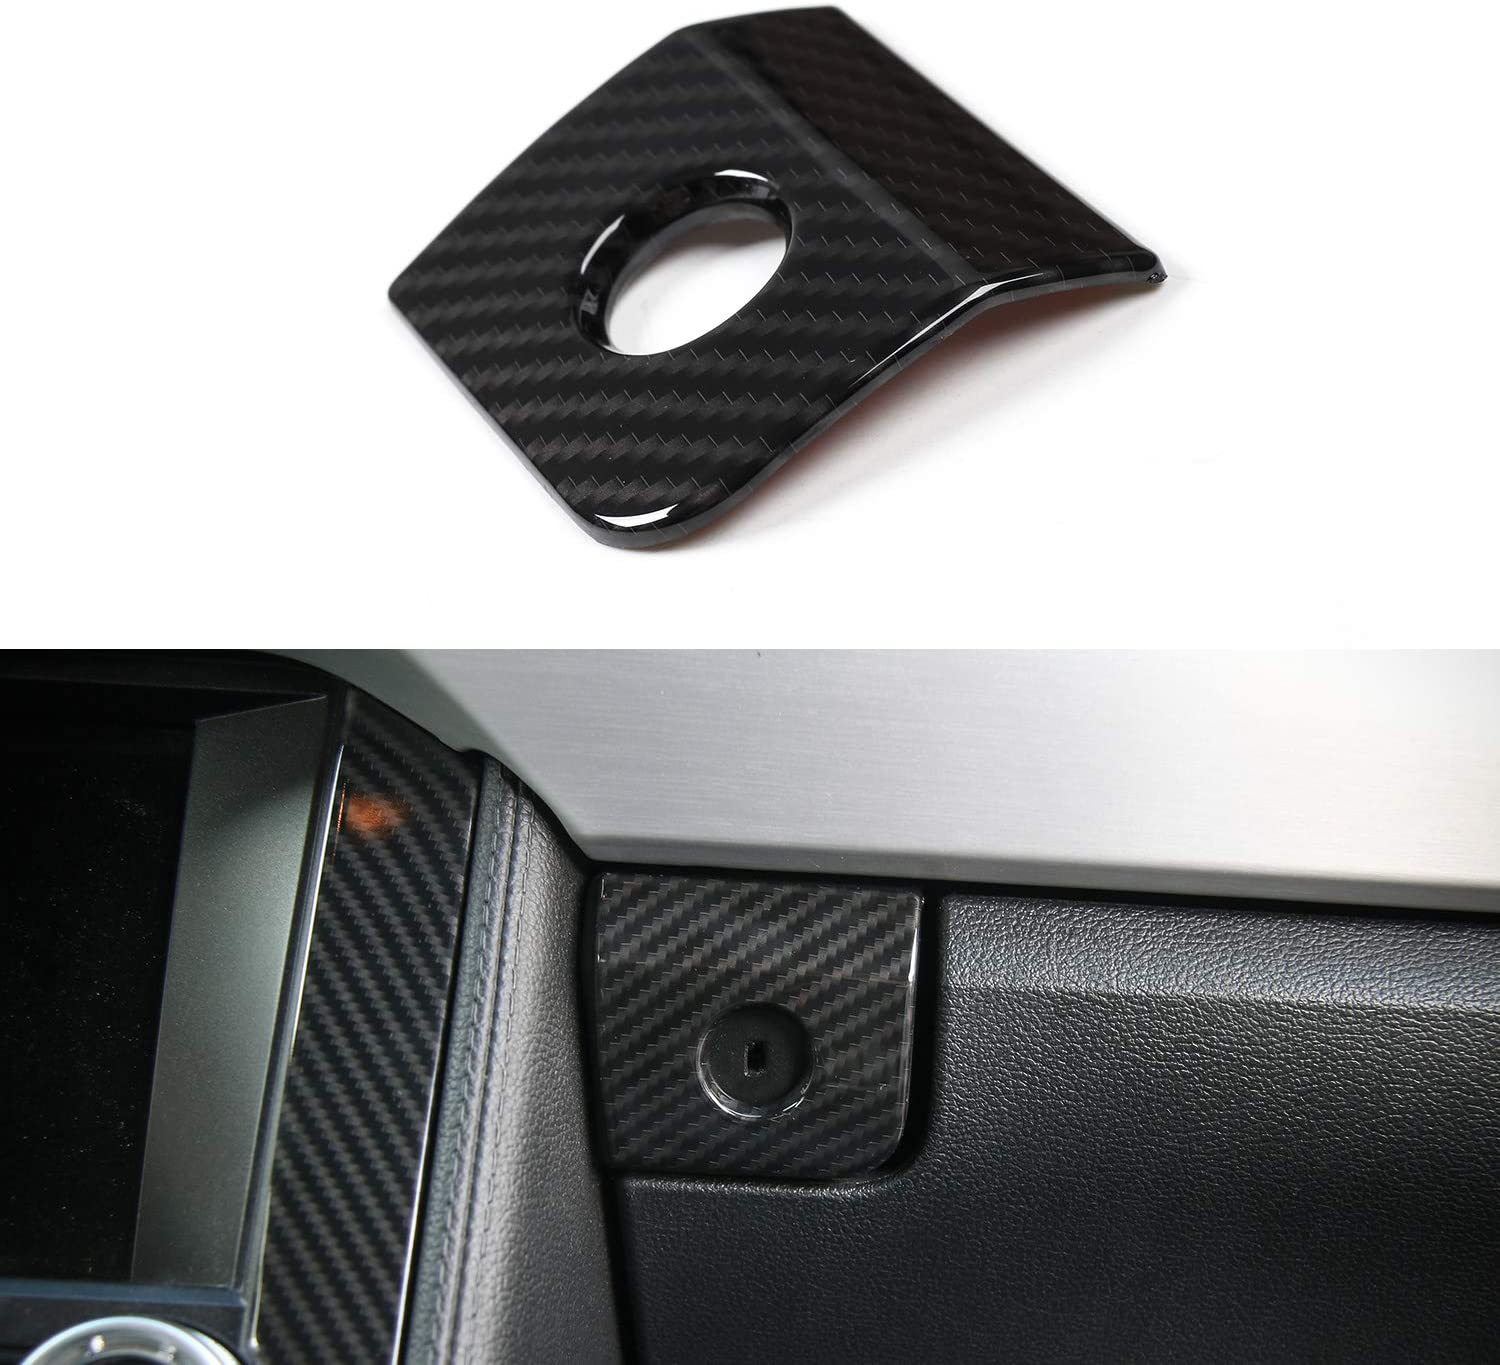 Car Co-pilot Armrest Storage Box Switch Button Frame Cover Trim for Ford Mustang 2015-2017 (Carbon Fiber Grain)